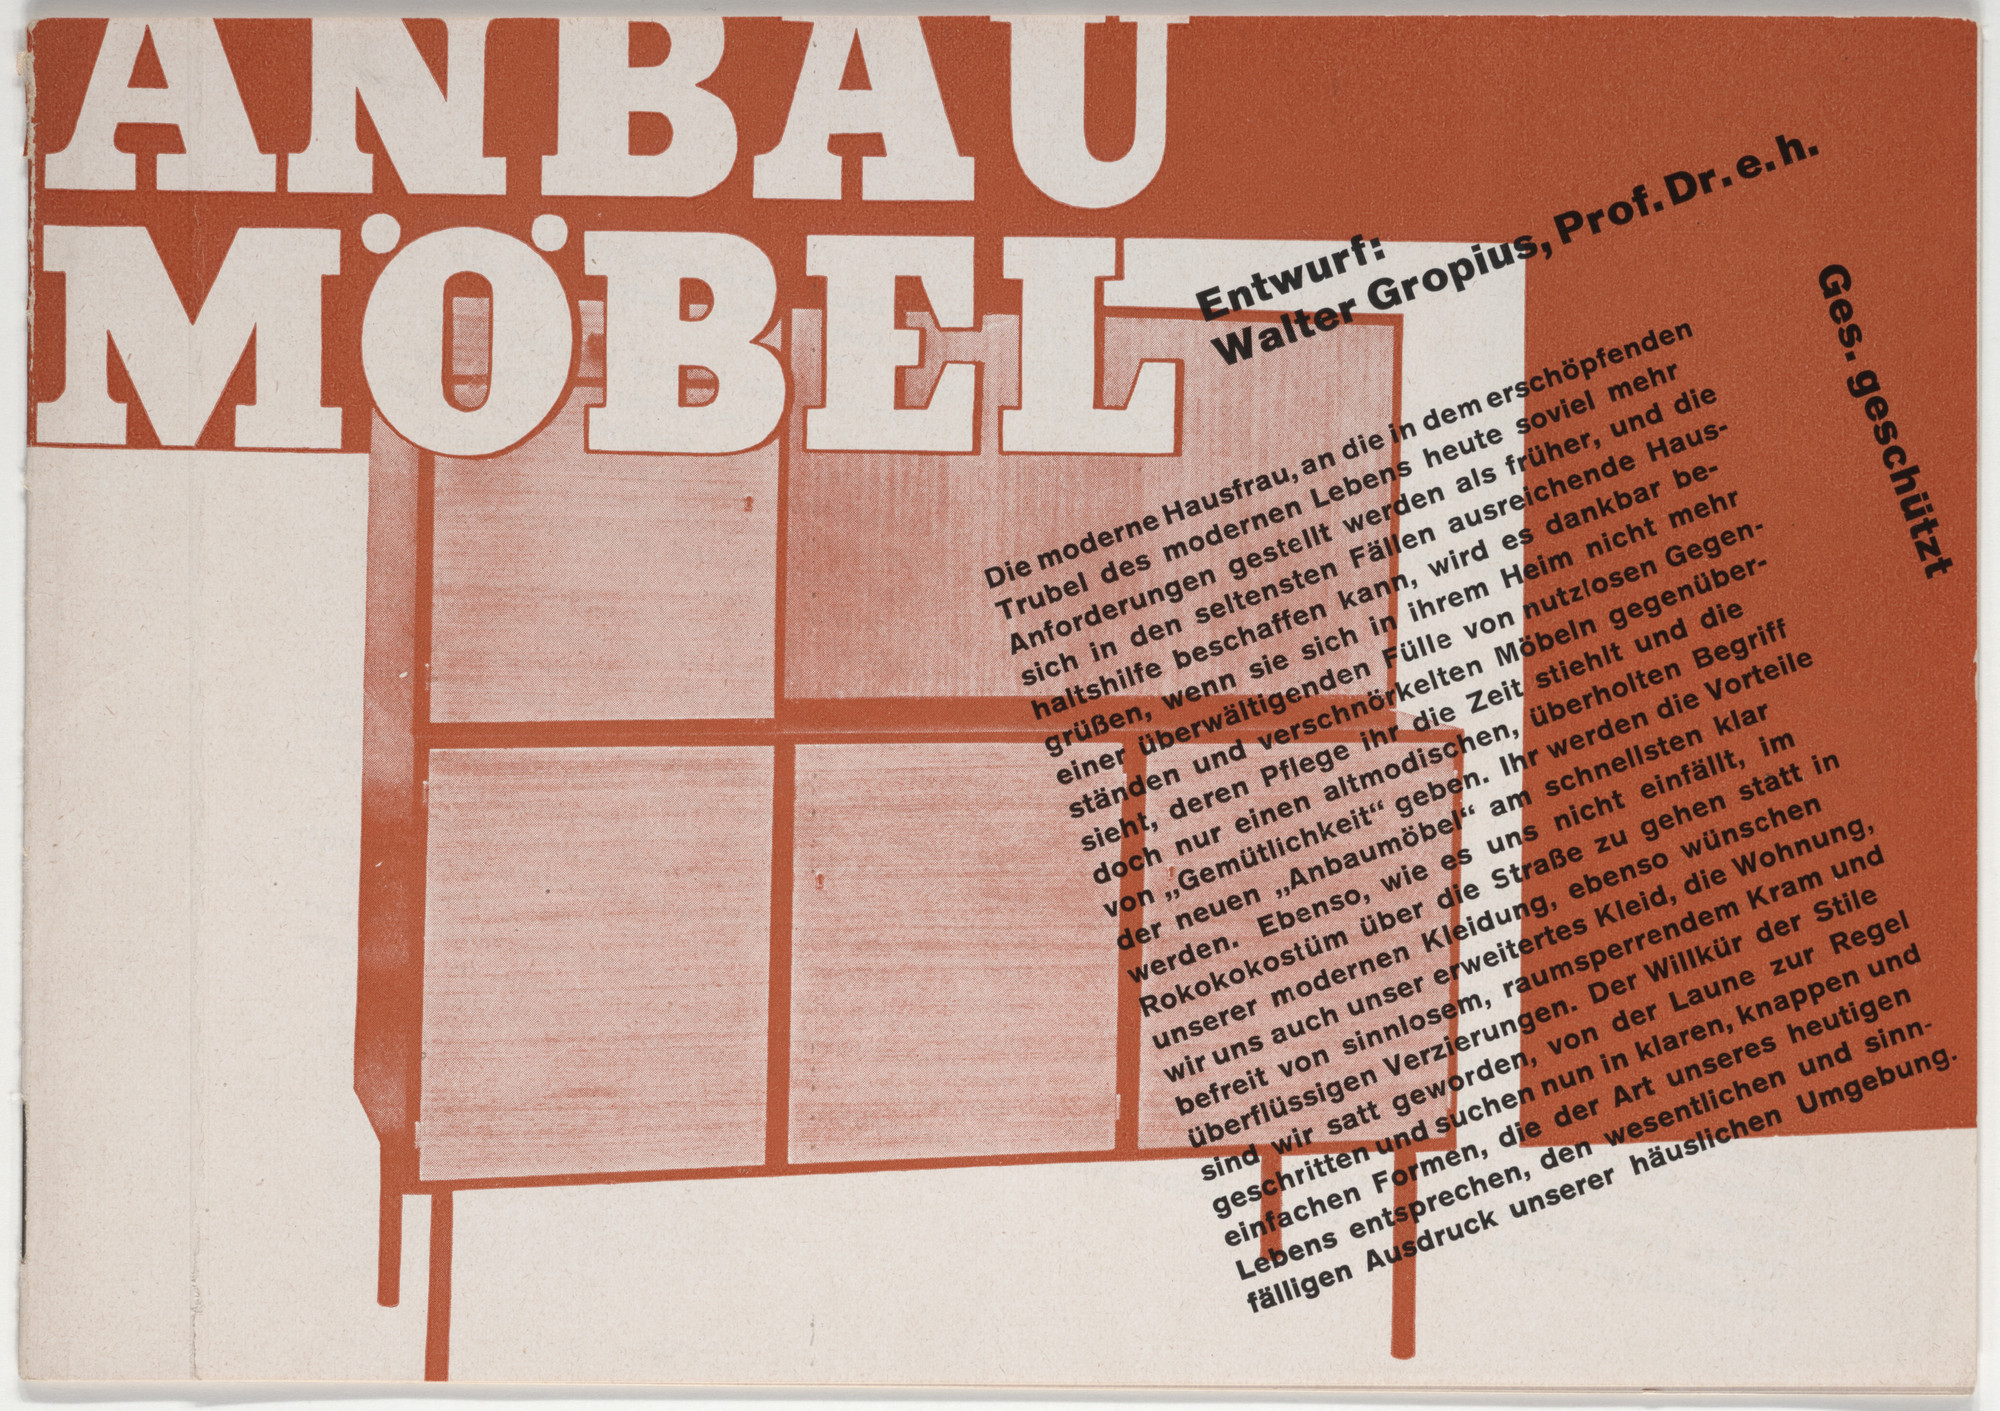 Herbert Bayer. Anbaumöbel, Entwurf: Walter Gropius, Prof. Dr. e.H (Brochure promoting modular furniture designed by Walter Gropius for the Berlin firm Feder). 1930